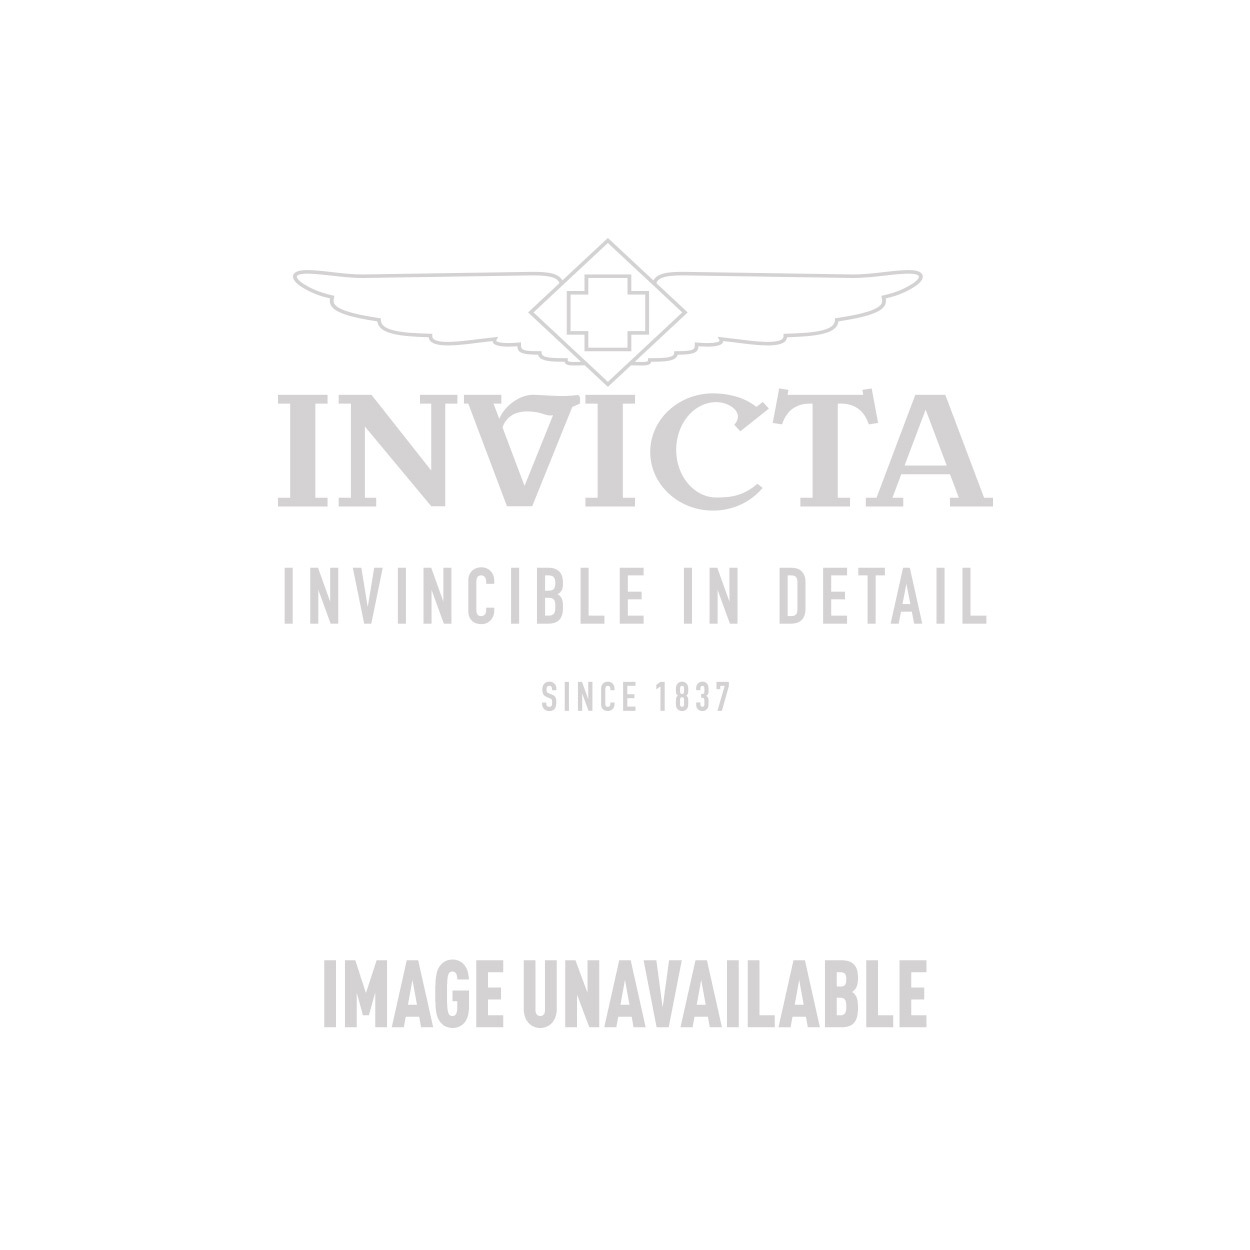 Invicta I-Force Swiss Movement Quartz Watch - Rose Gold case with Brown tone Leather band - Model 13010